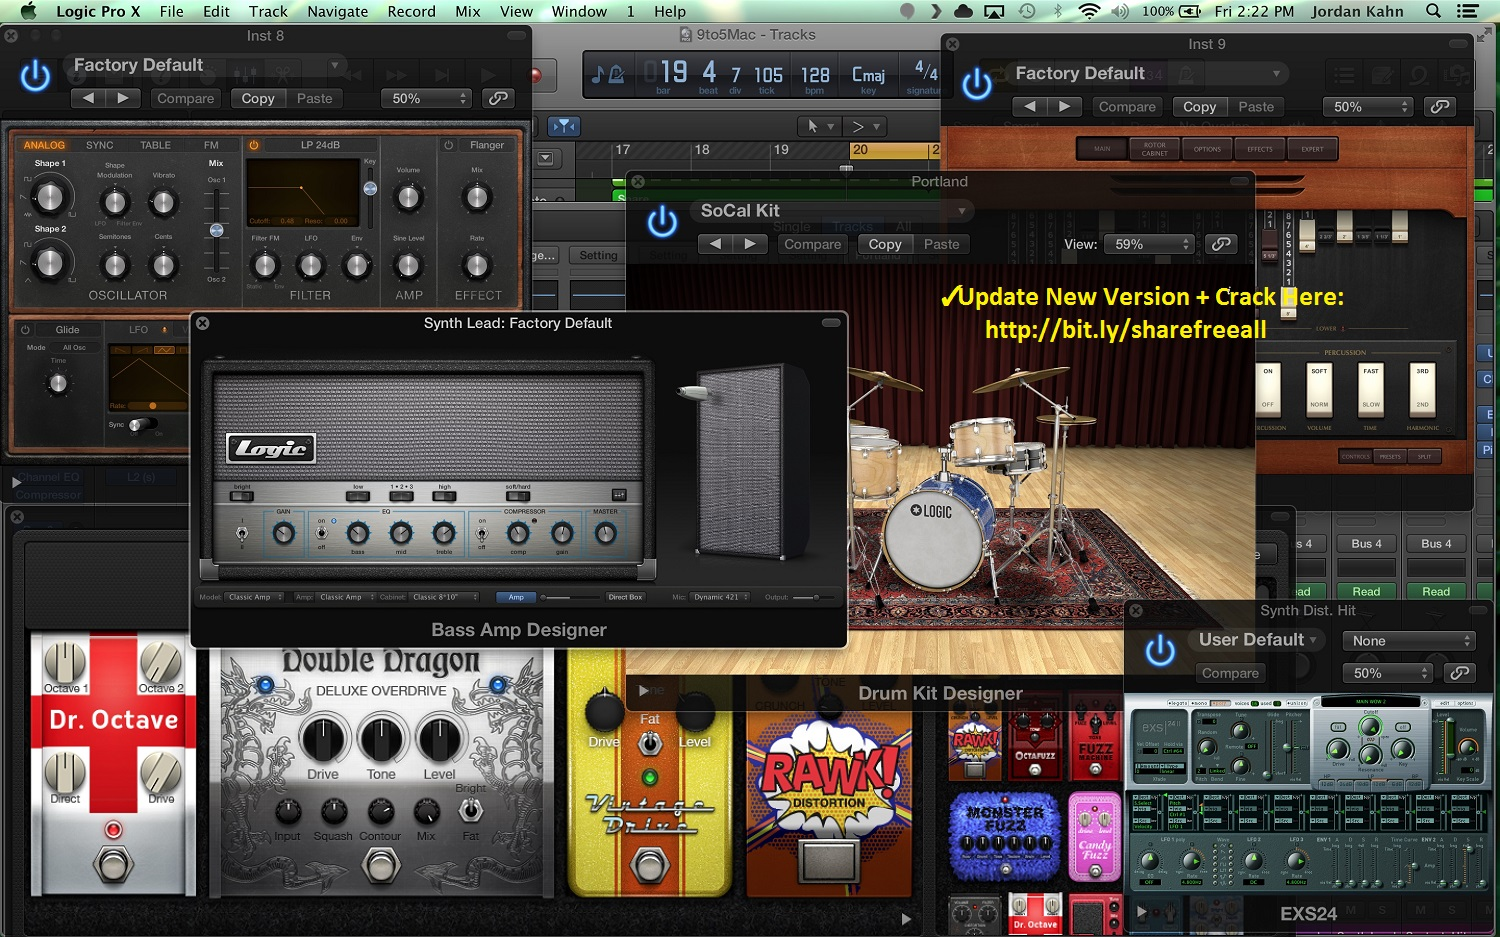 logic pro x 10.2 3 download